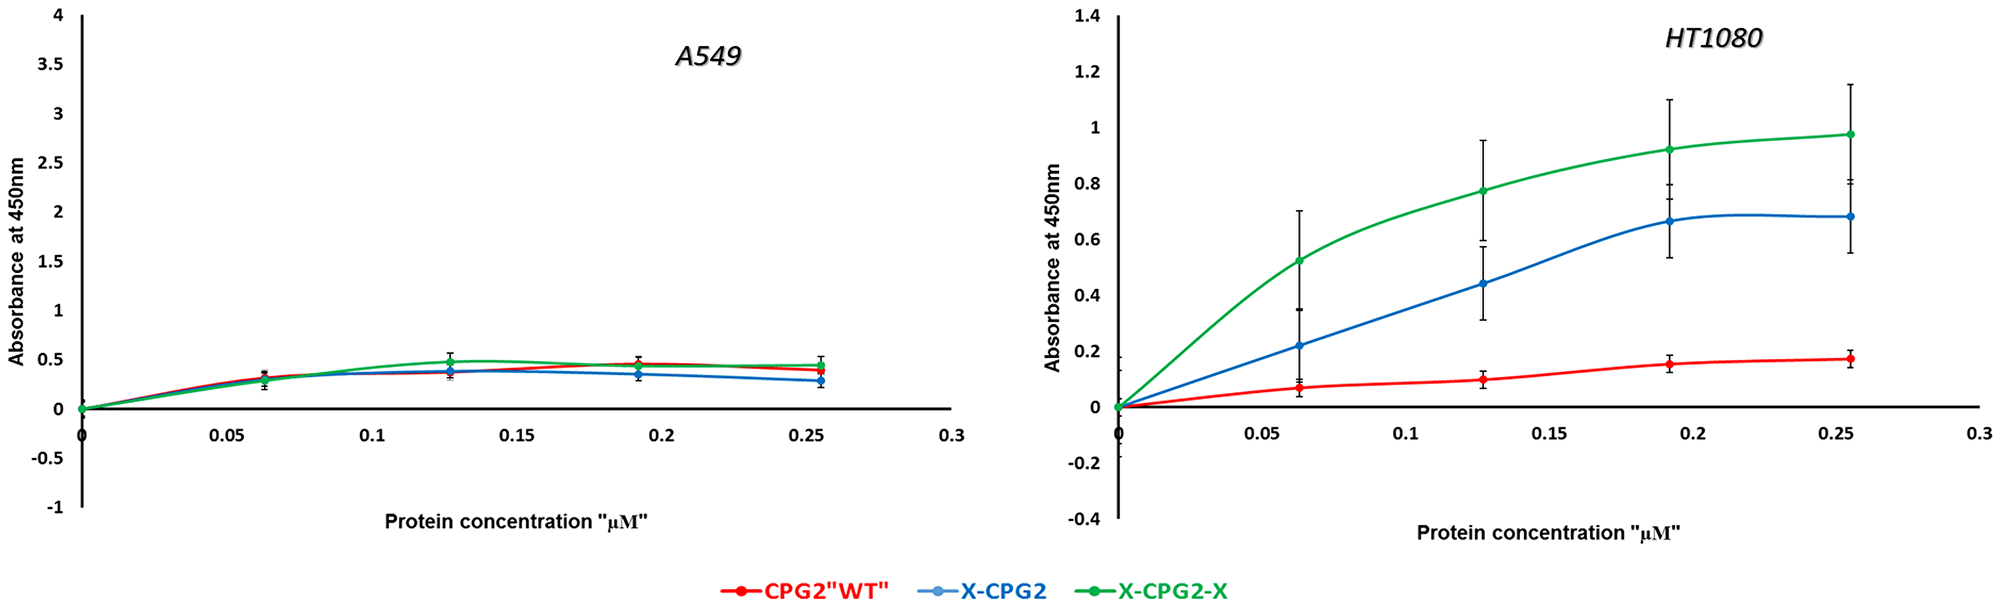 In vitro binding assay of CPG2 and its fusion protein derivatives to cancer cells expressing low (A549) and high (HT1080) levels of APN.